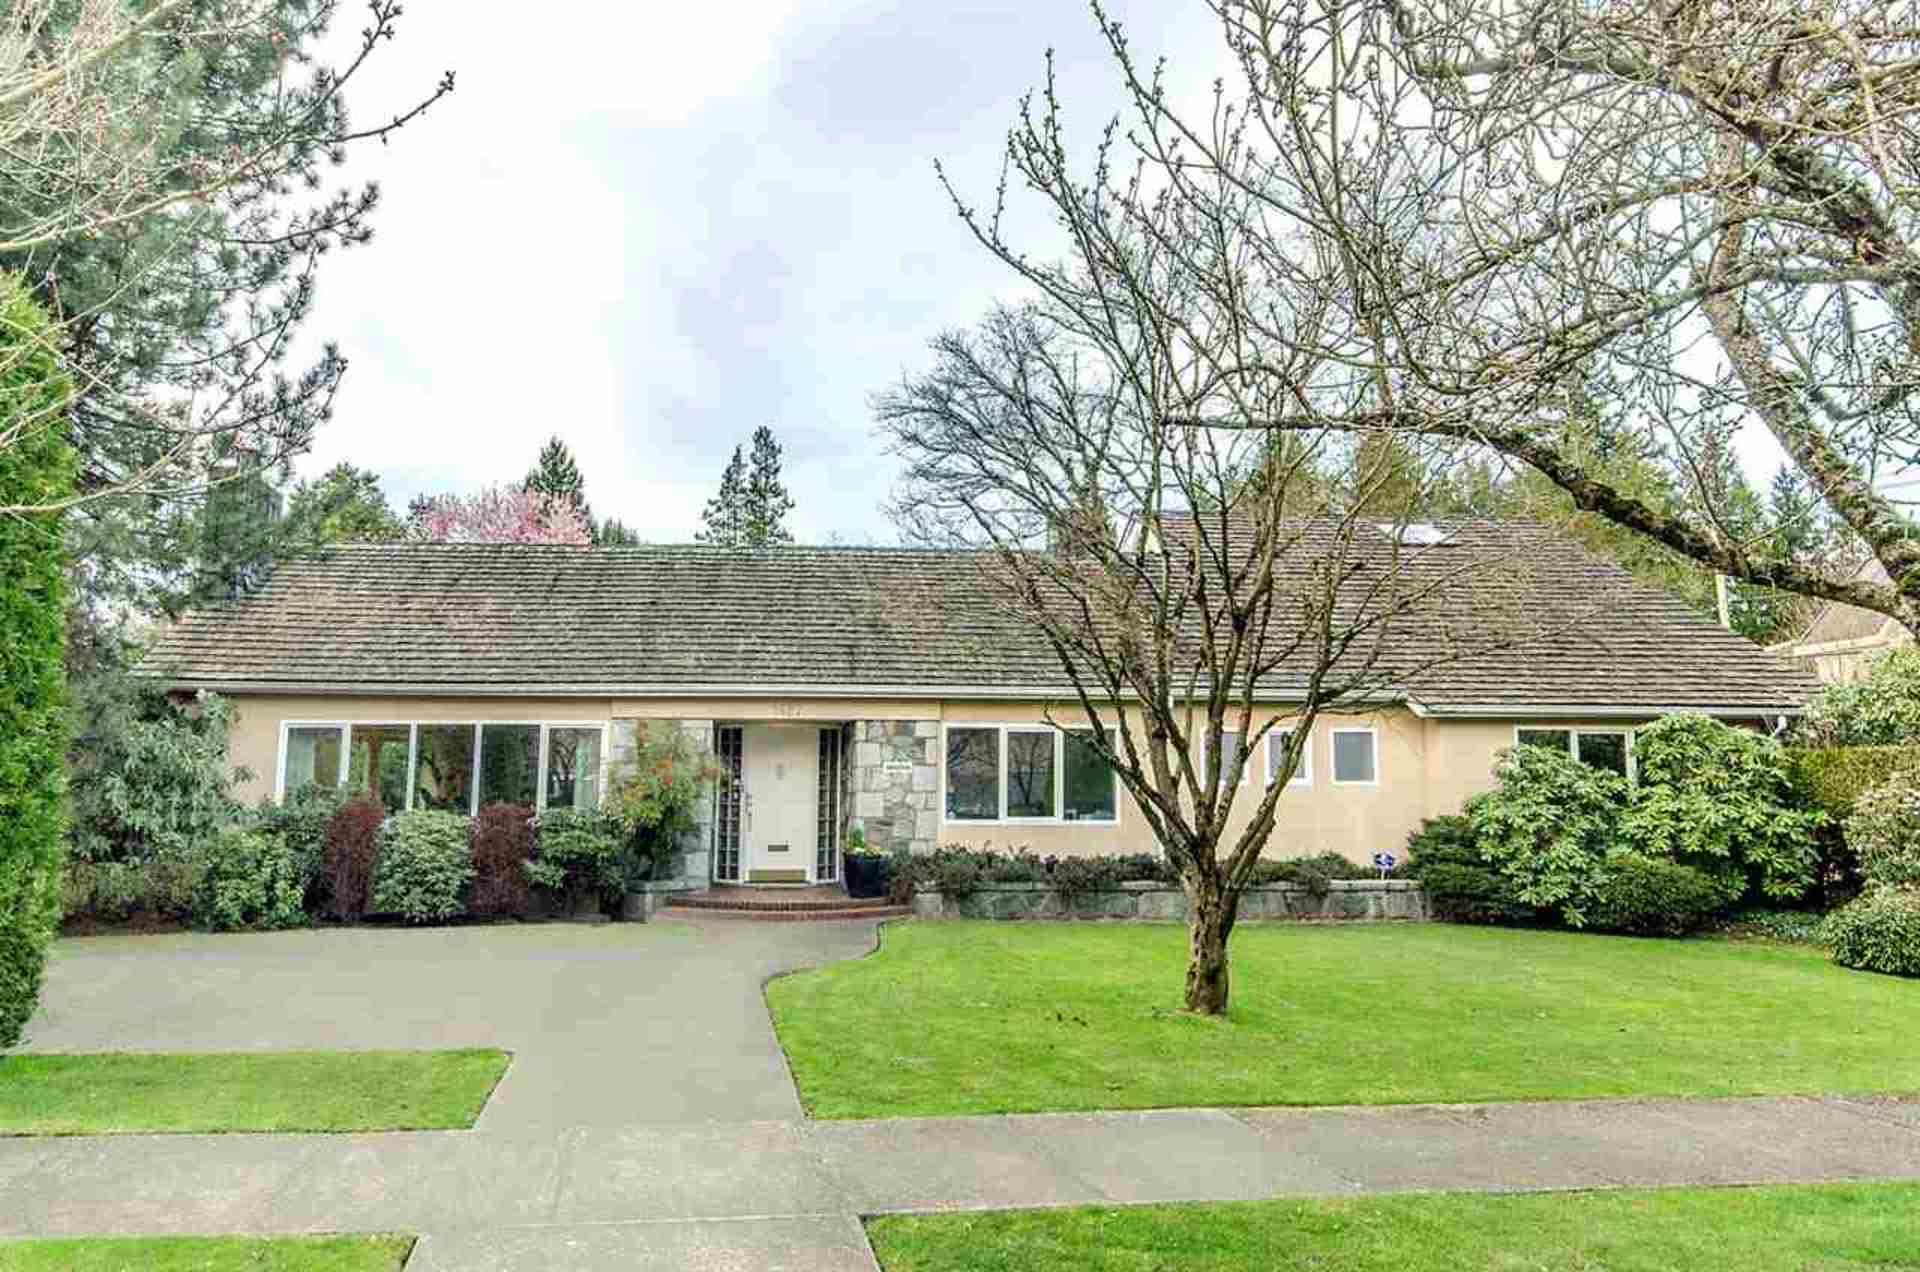 1487-Minto-Crescent.jpeg at 1487 Minto Crescent, Shaughnessy, Vancouver West